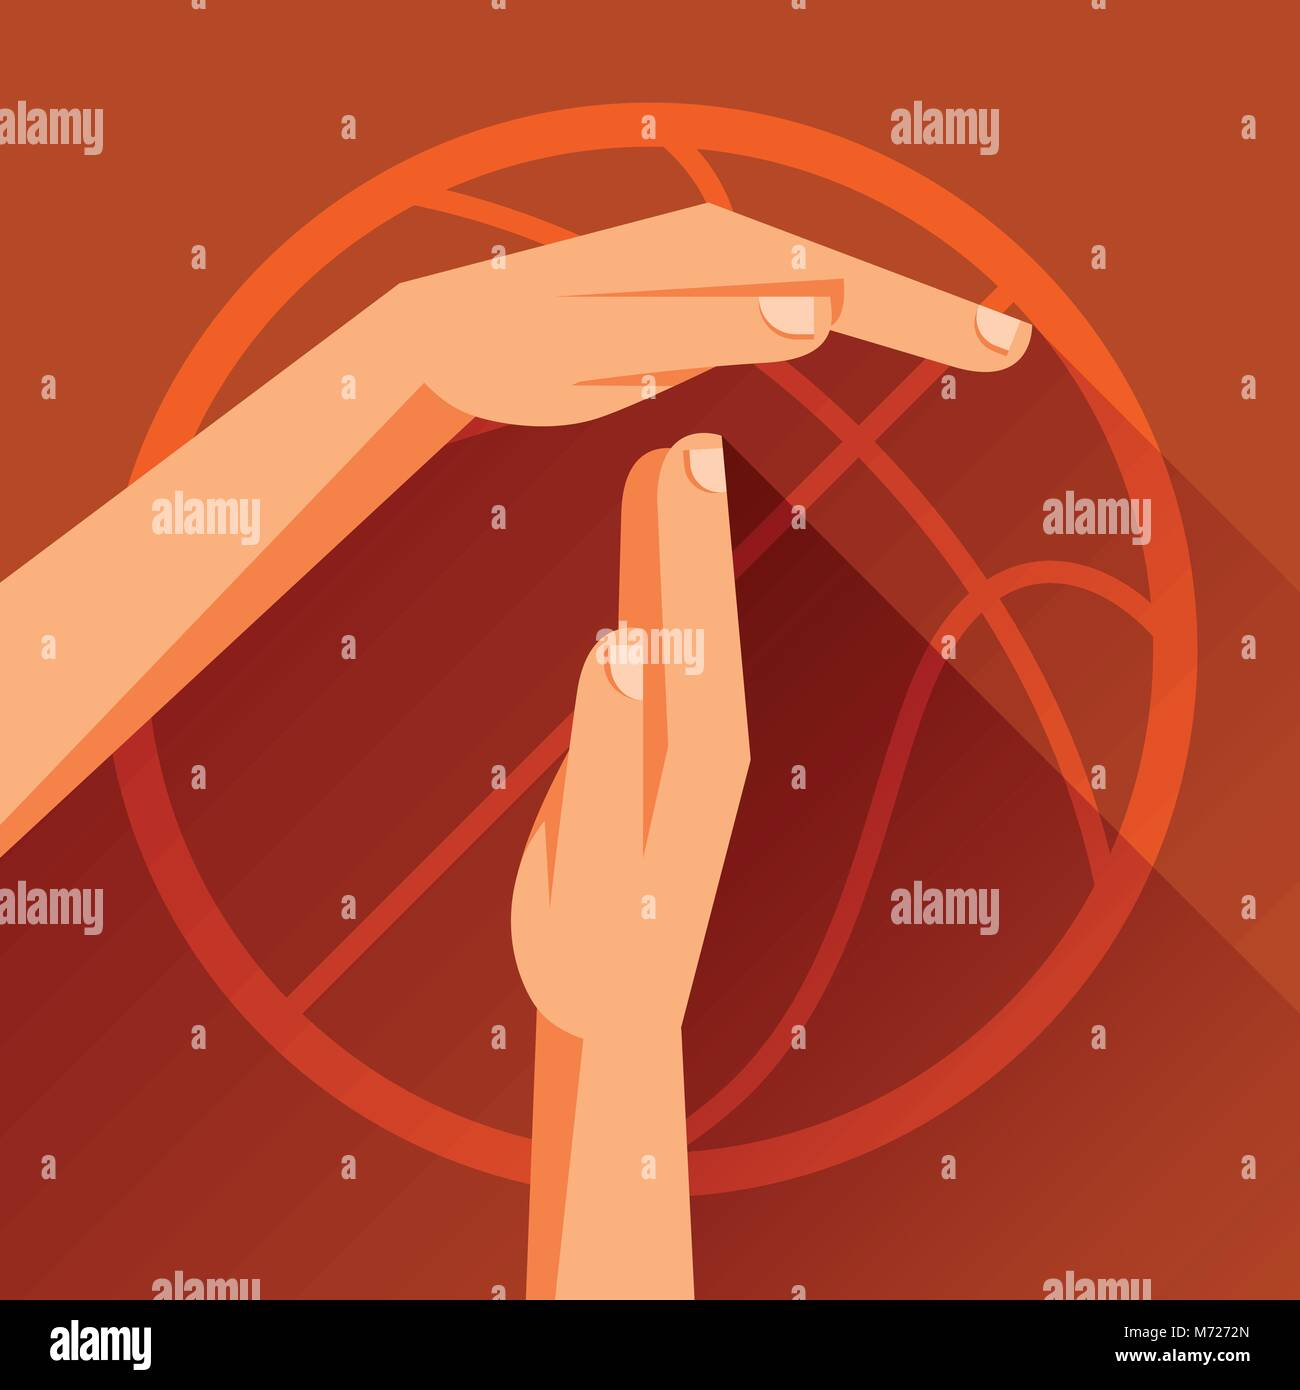 Sports illustration with basketball gesture sign timeout - Stock Vector